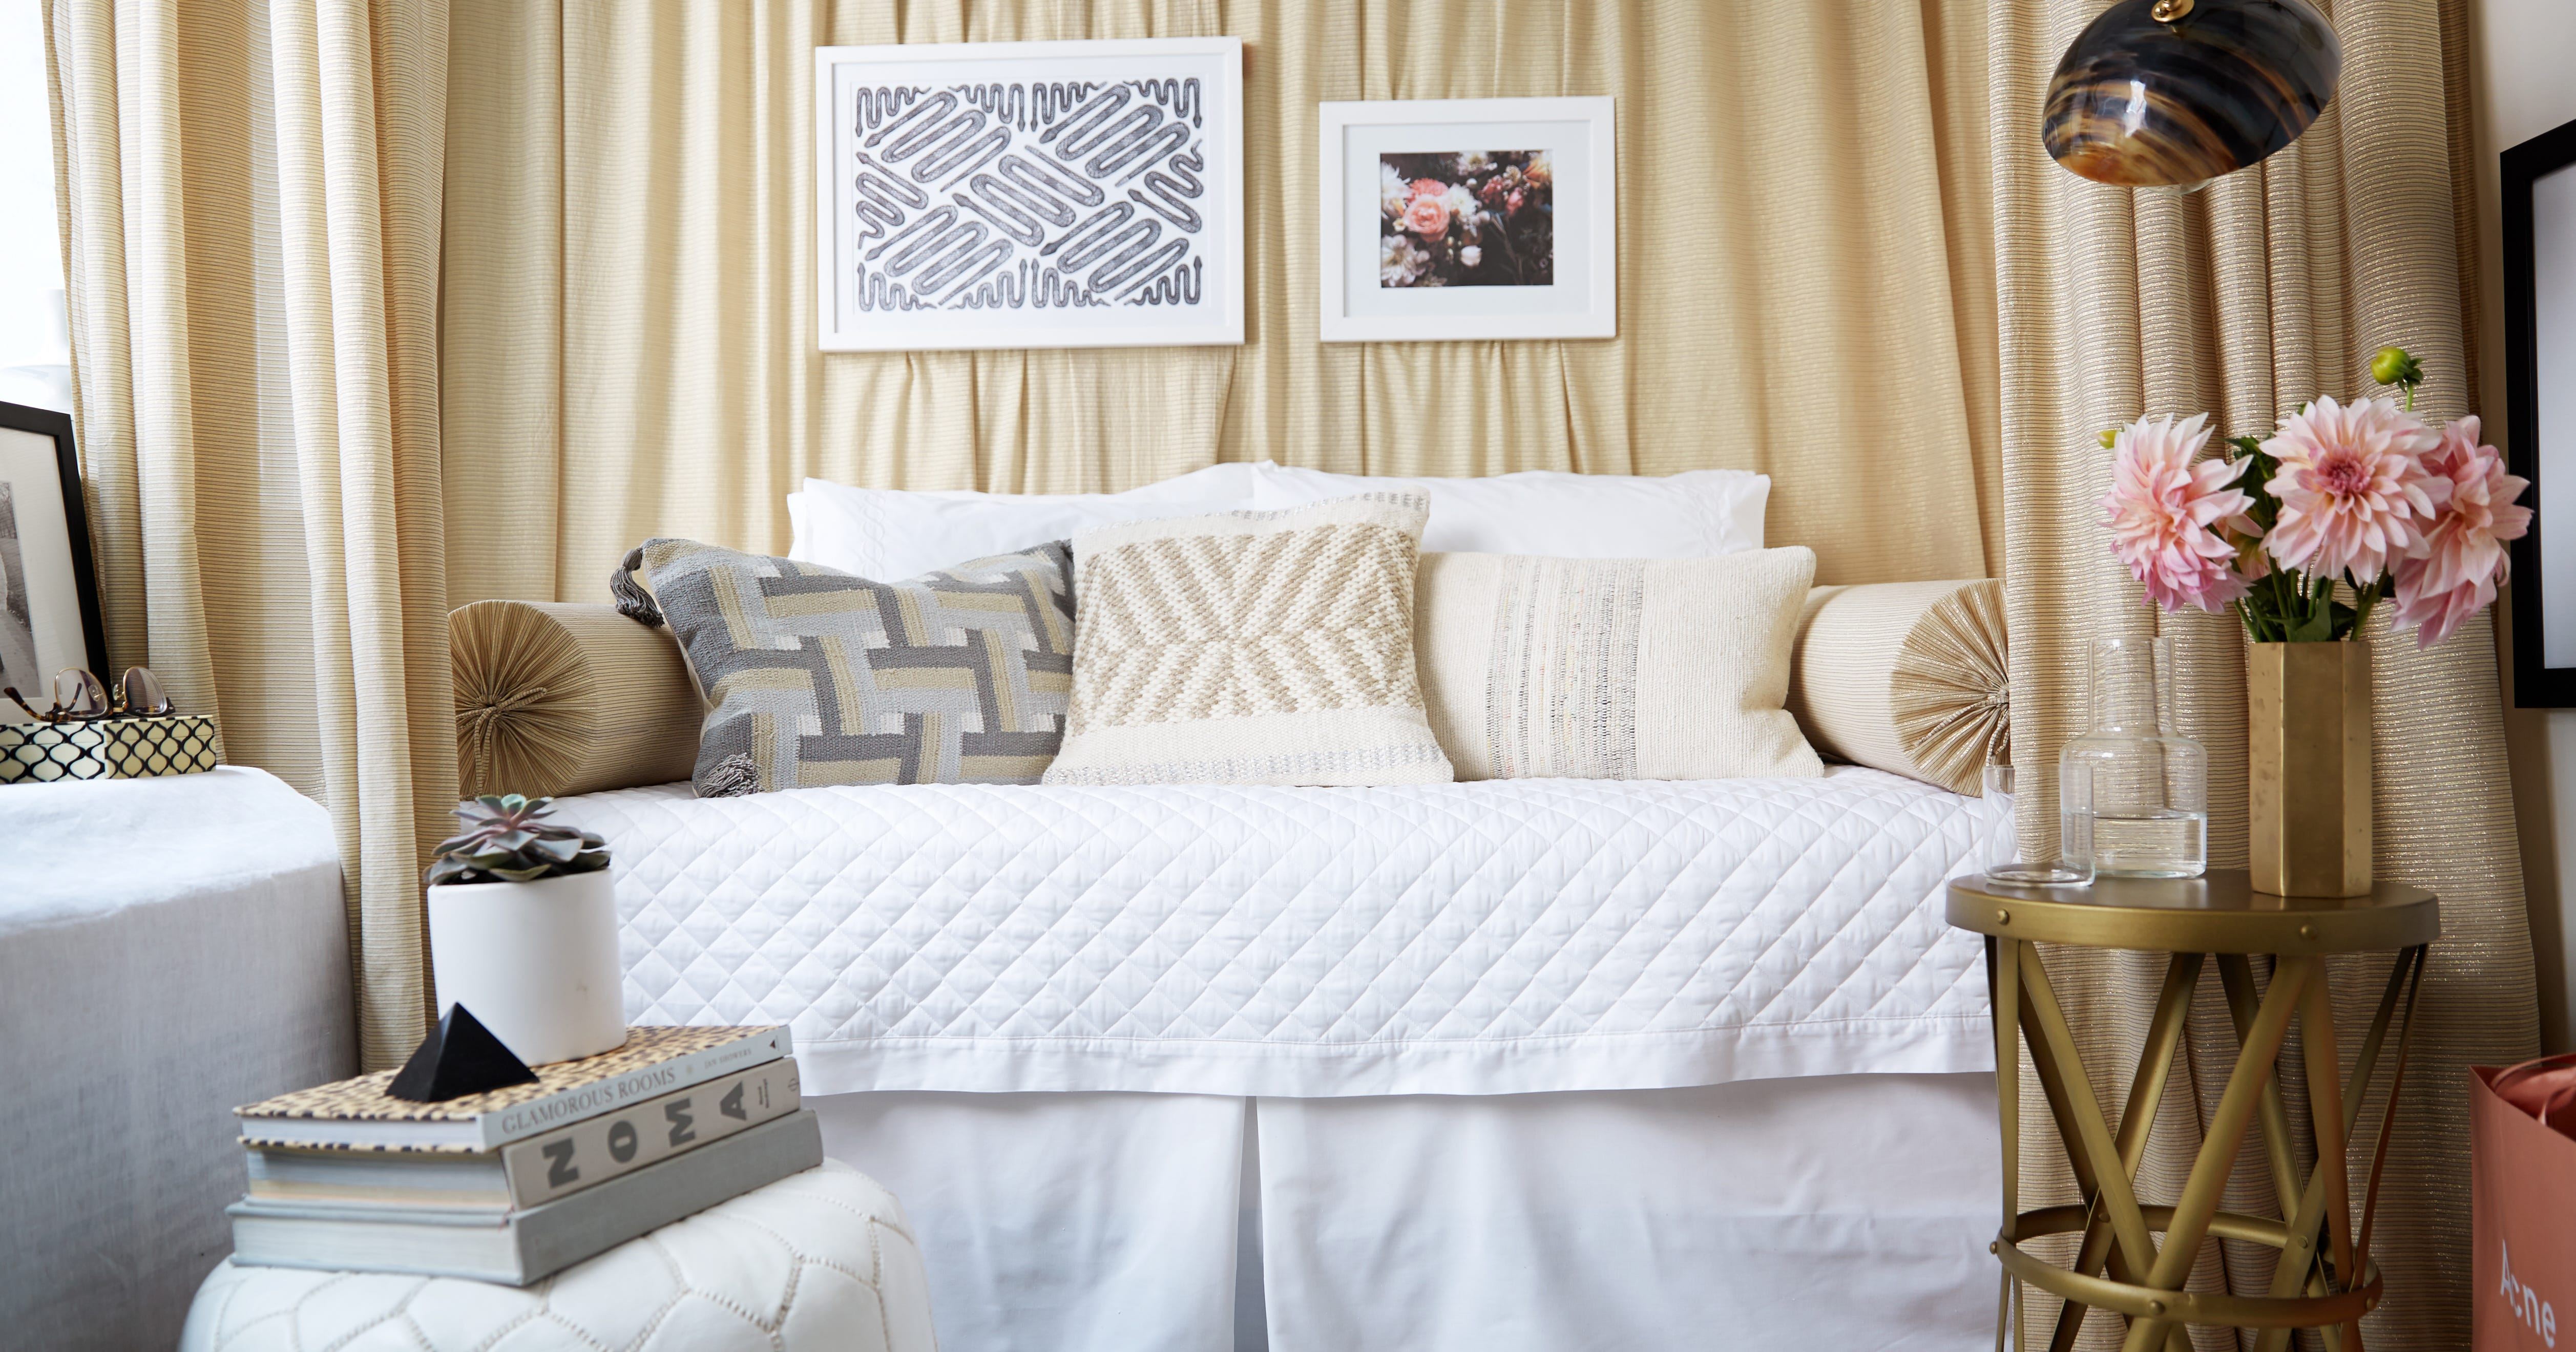 Small Space Living Ideas, Convertible Bedroom